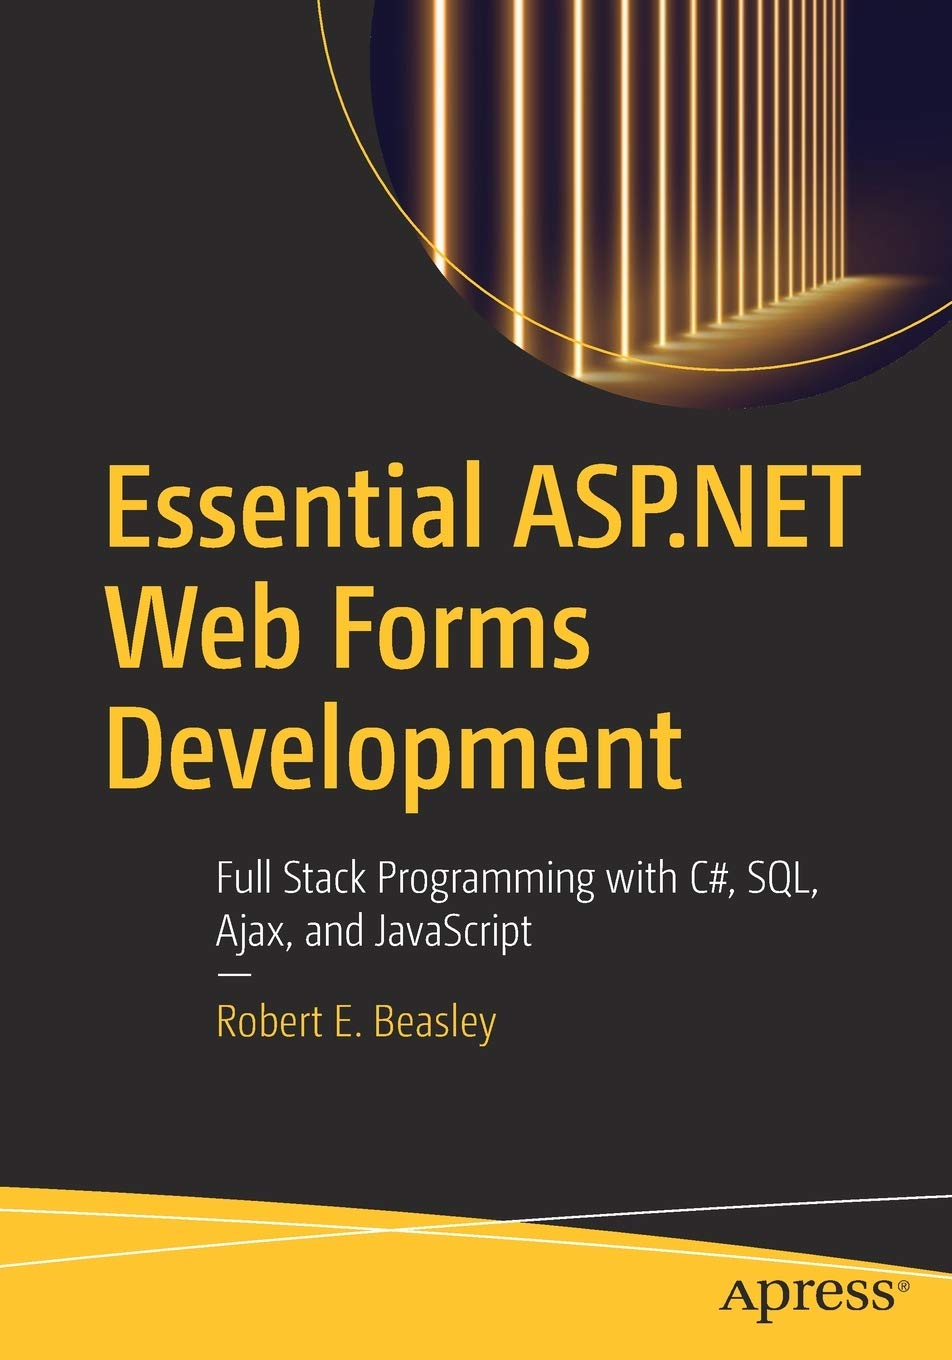 Essential ASP.NET Web Forms Development: Full Stack Programming with C#, SQL, Ajax, and JavaScript